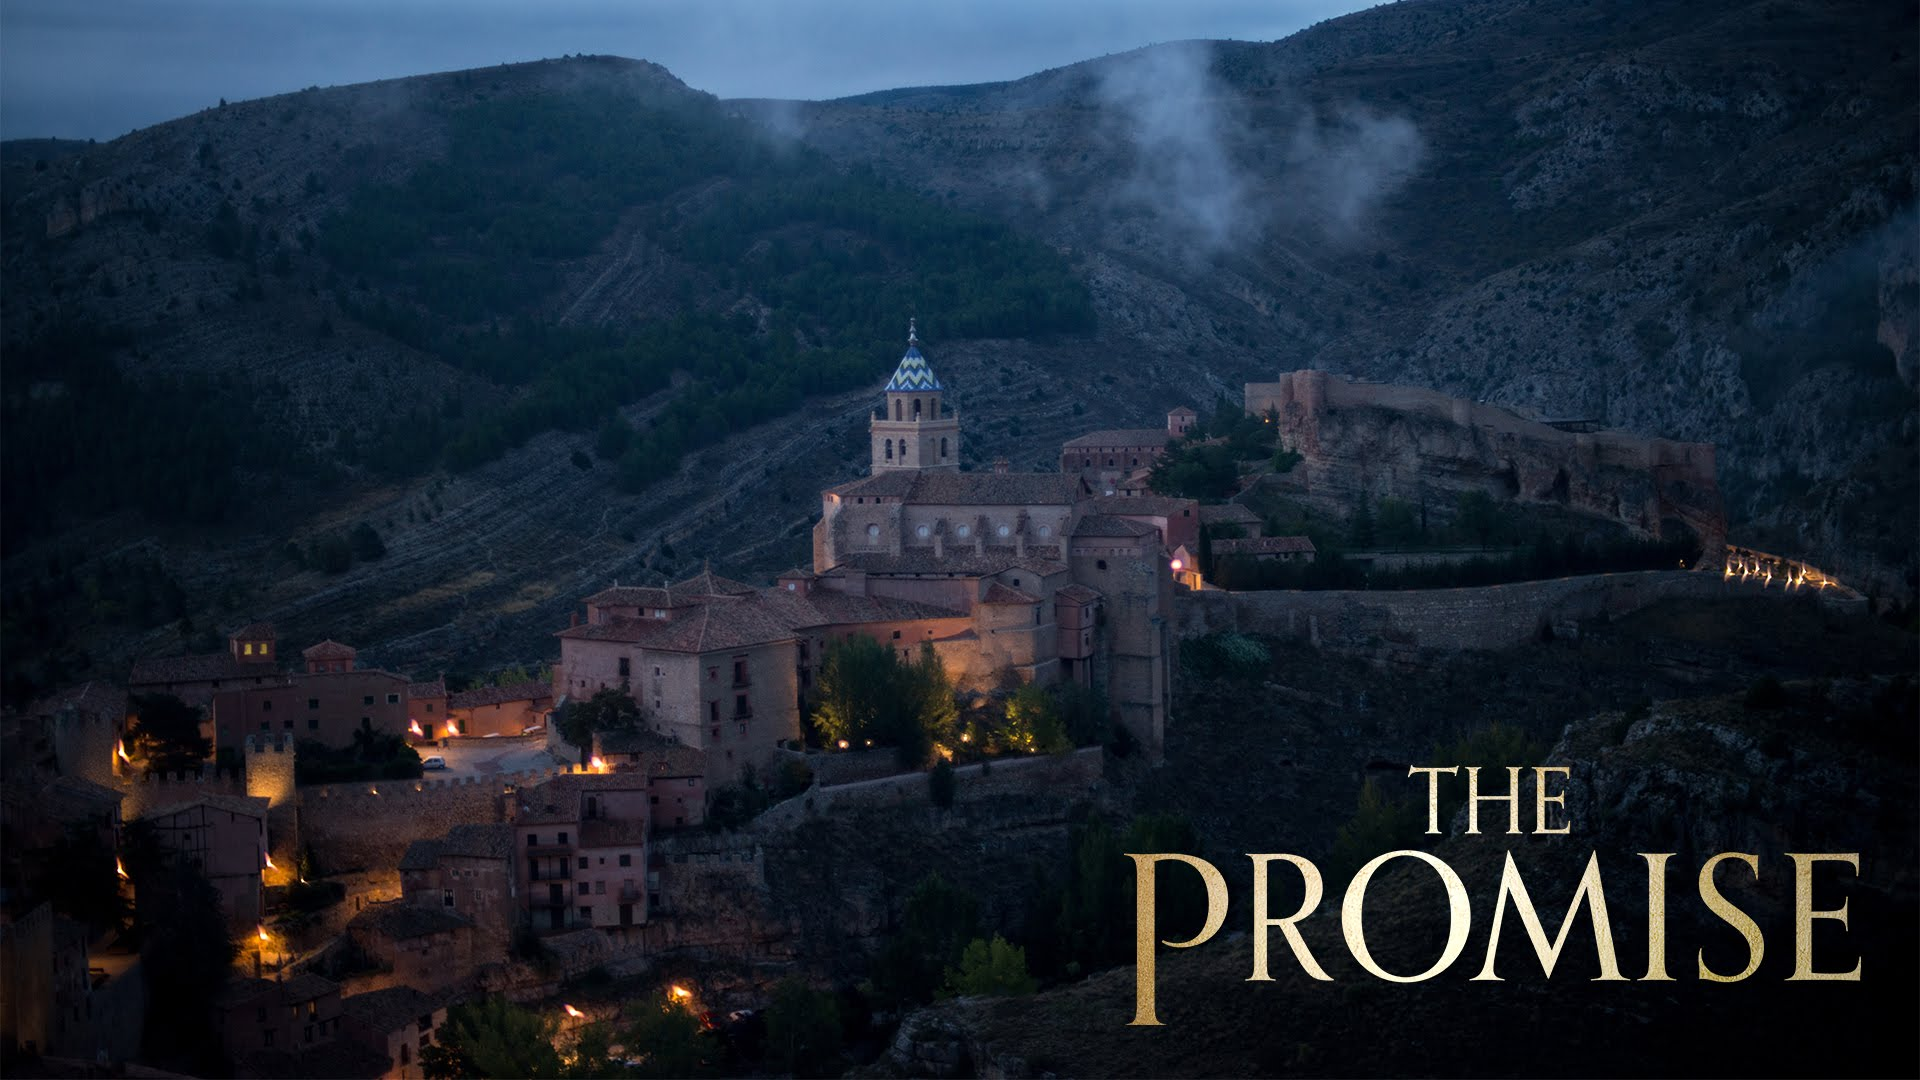 The Promise (2016) video/trailer